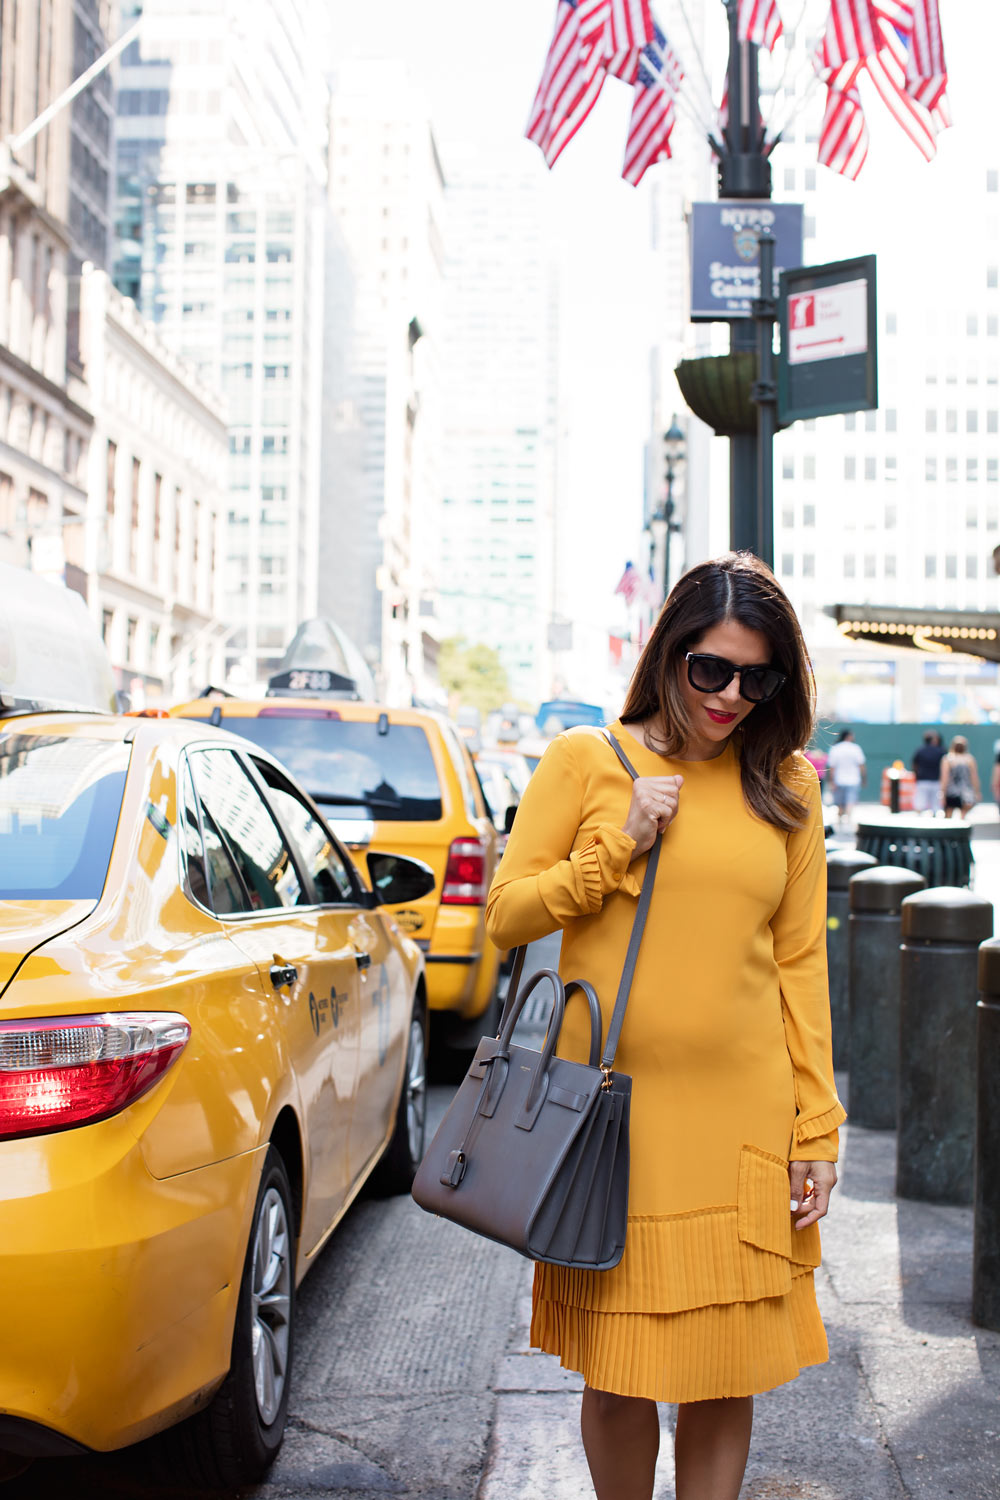 asos mustard dress workwear what to wear to work hire a mentor career contessa new york city fashion blogger nyc corporate catwalk fall fashion style blogger